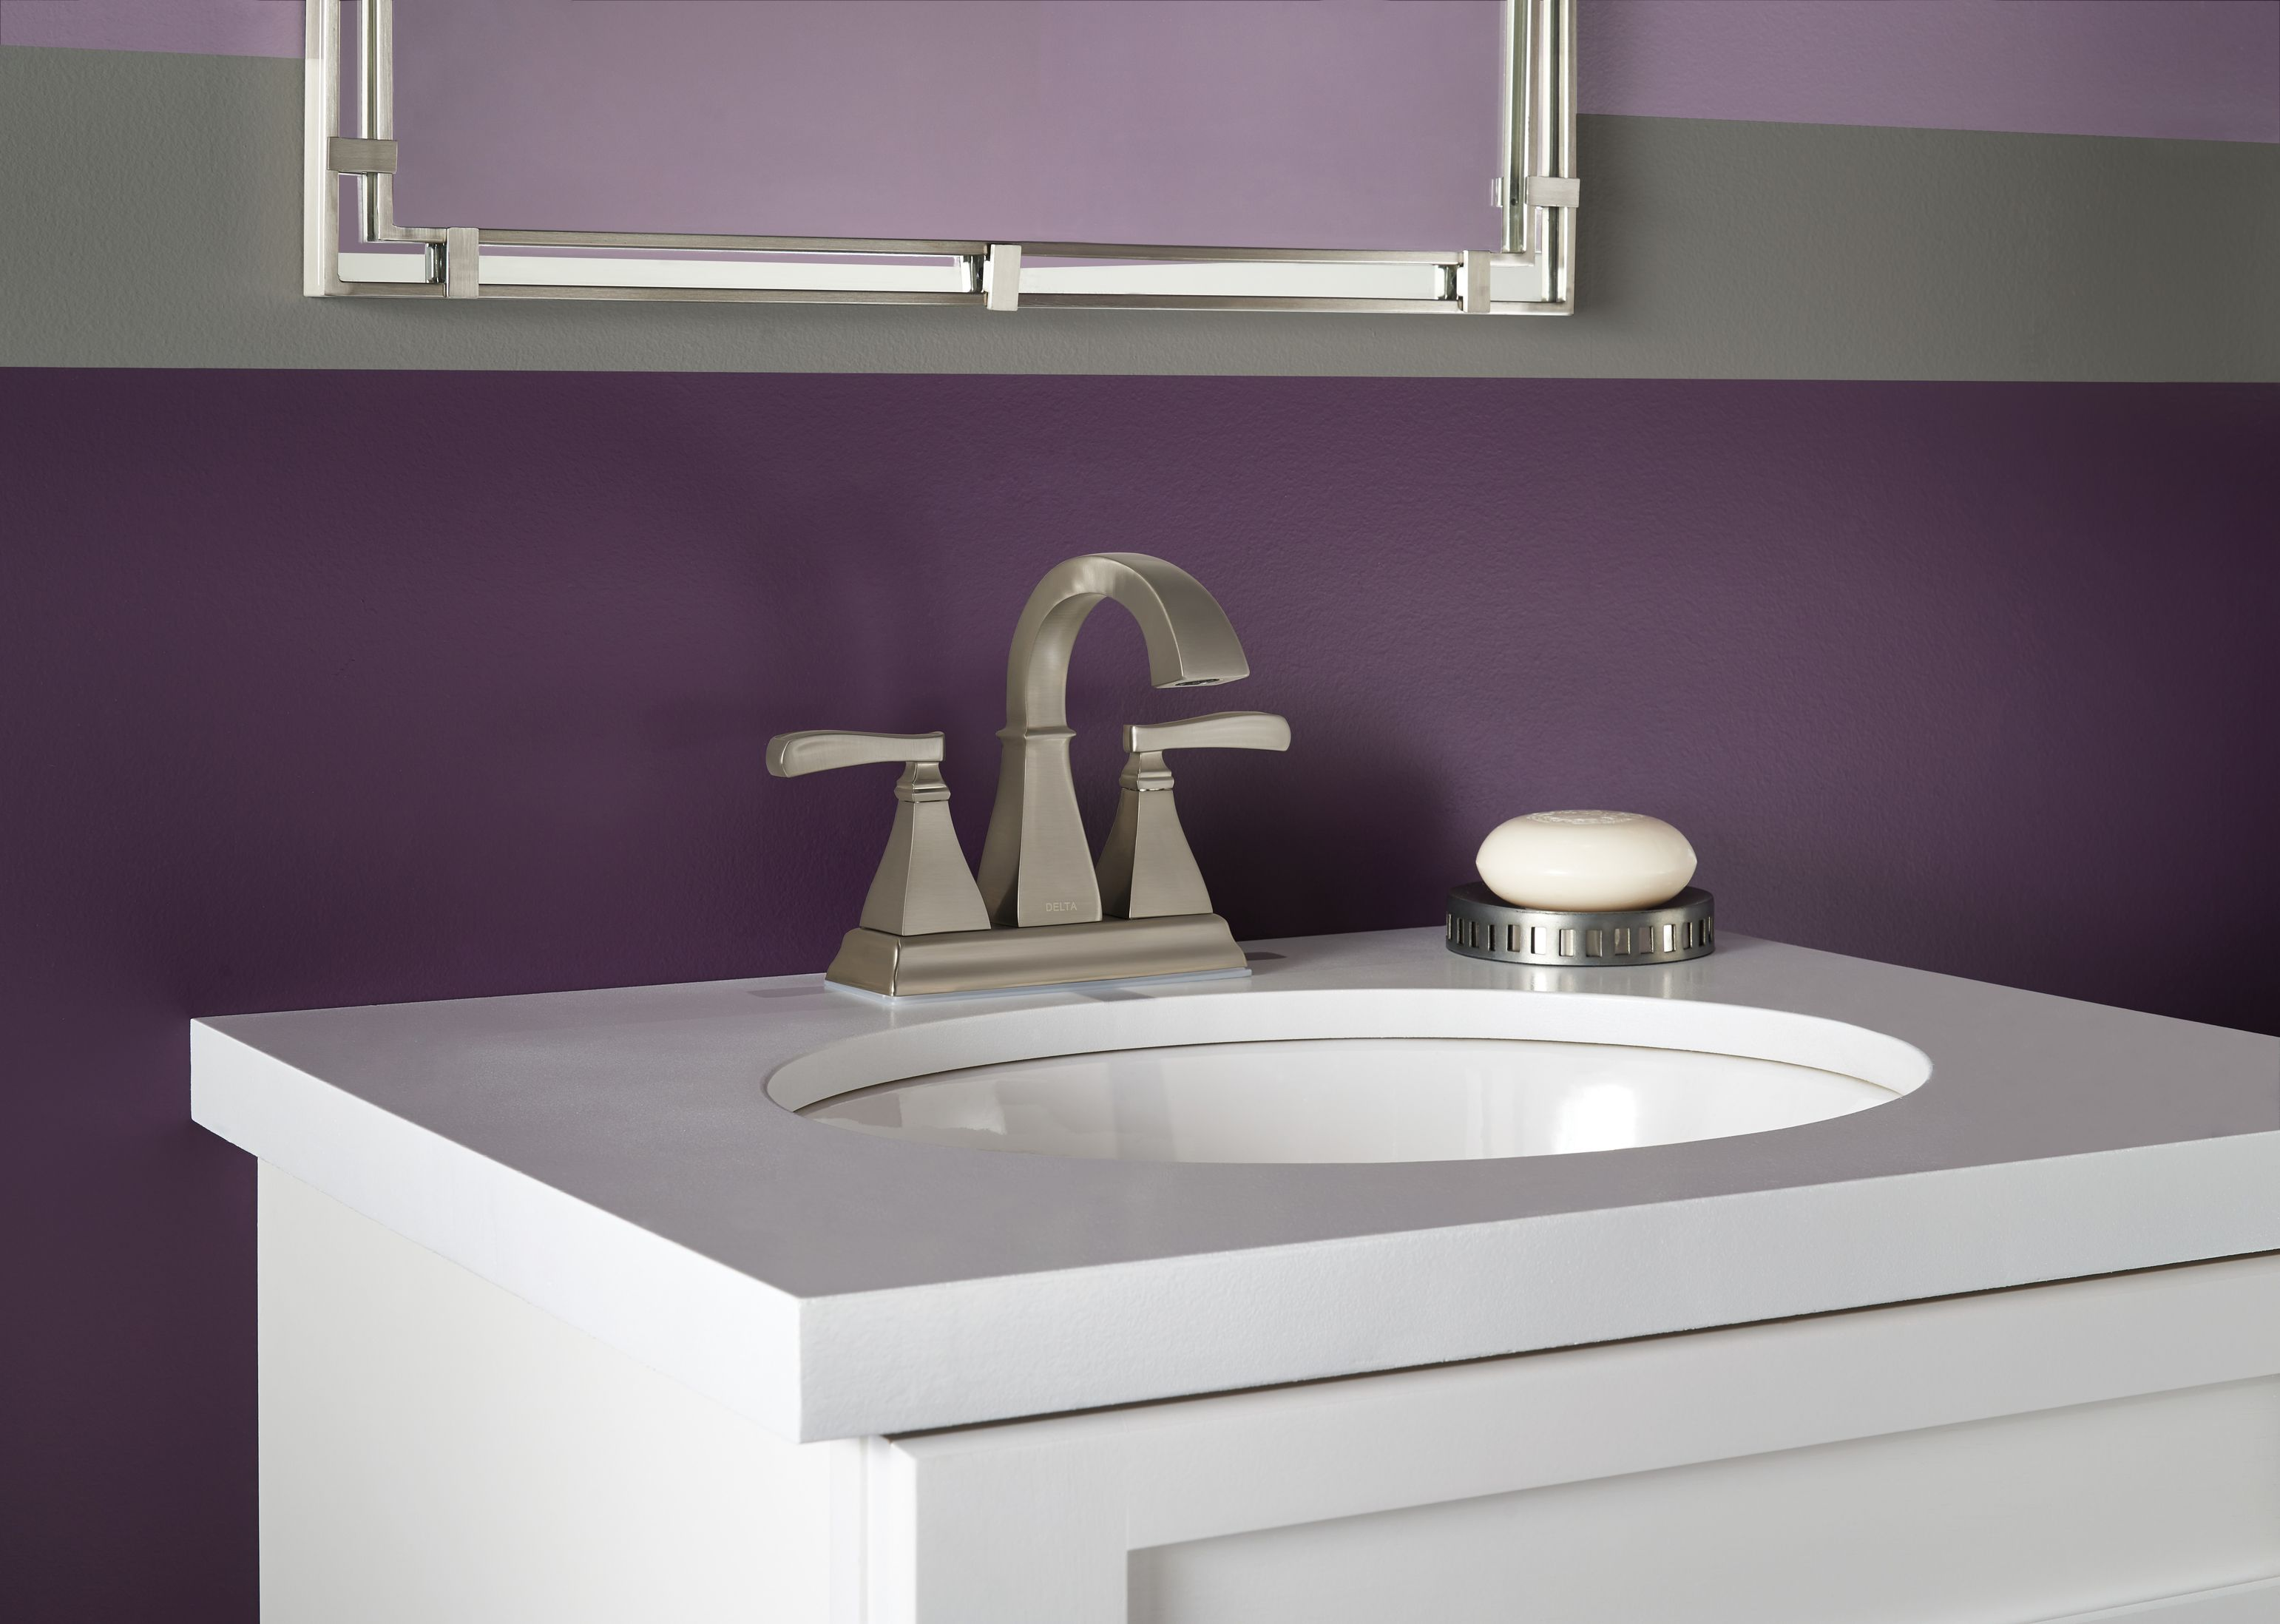 White Single Bathroom Sink With Purple Painted Walls And Brushed Nickel Faucet From The Delta